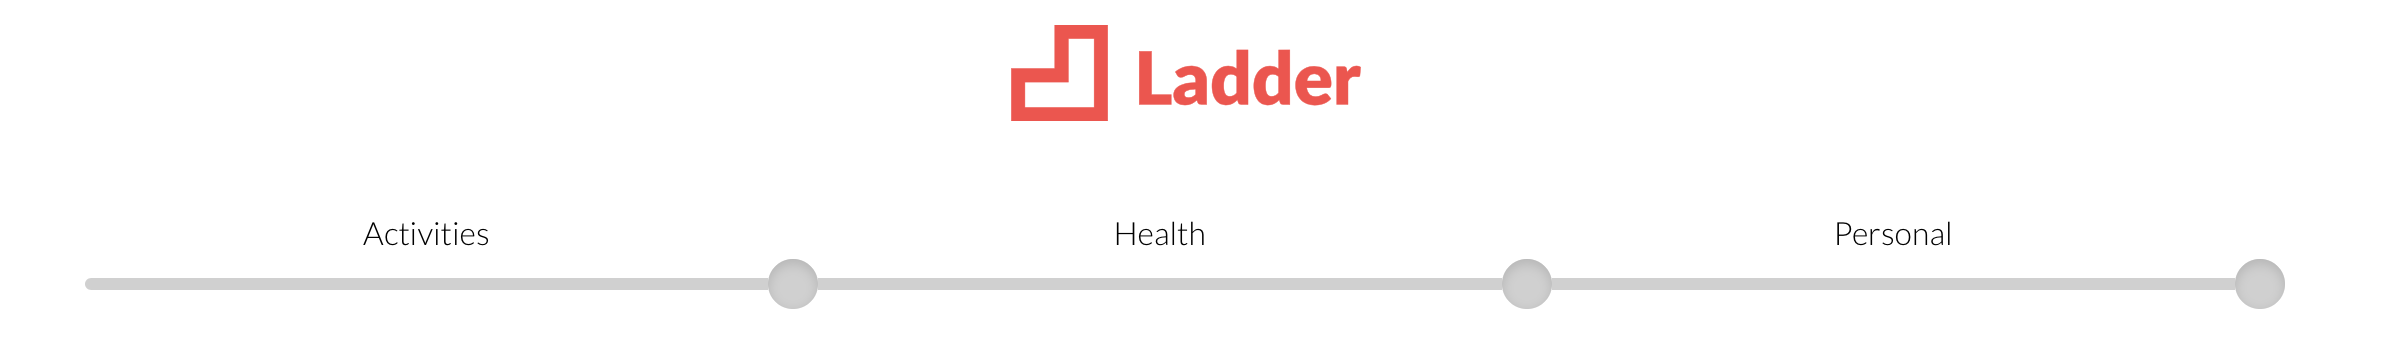 ladder_question_1.png